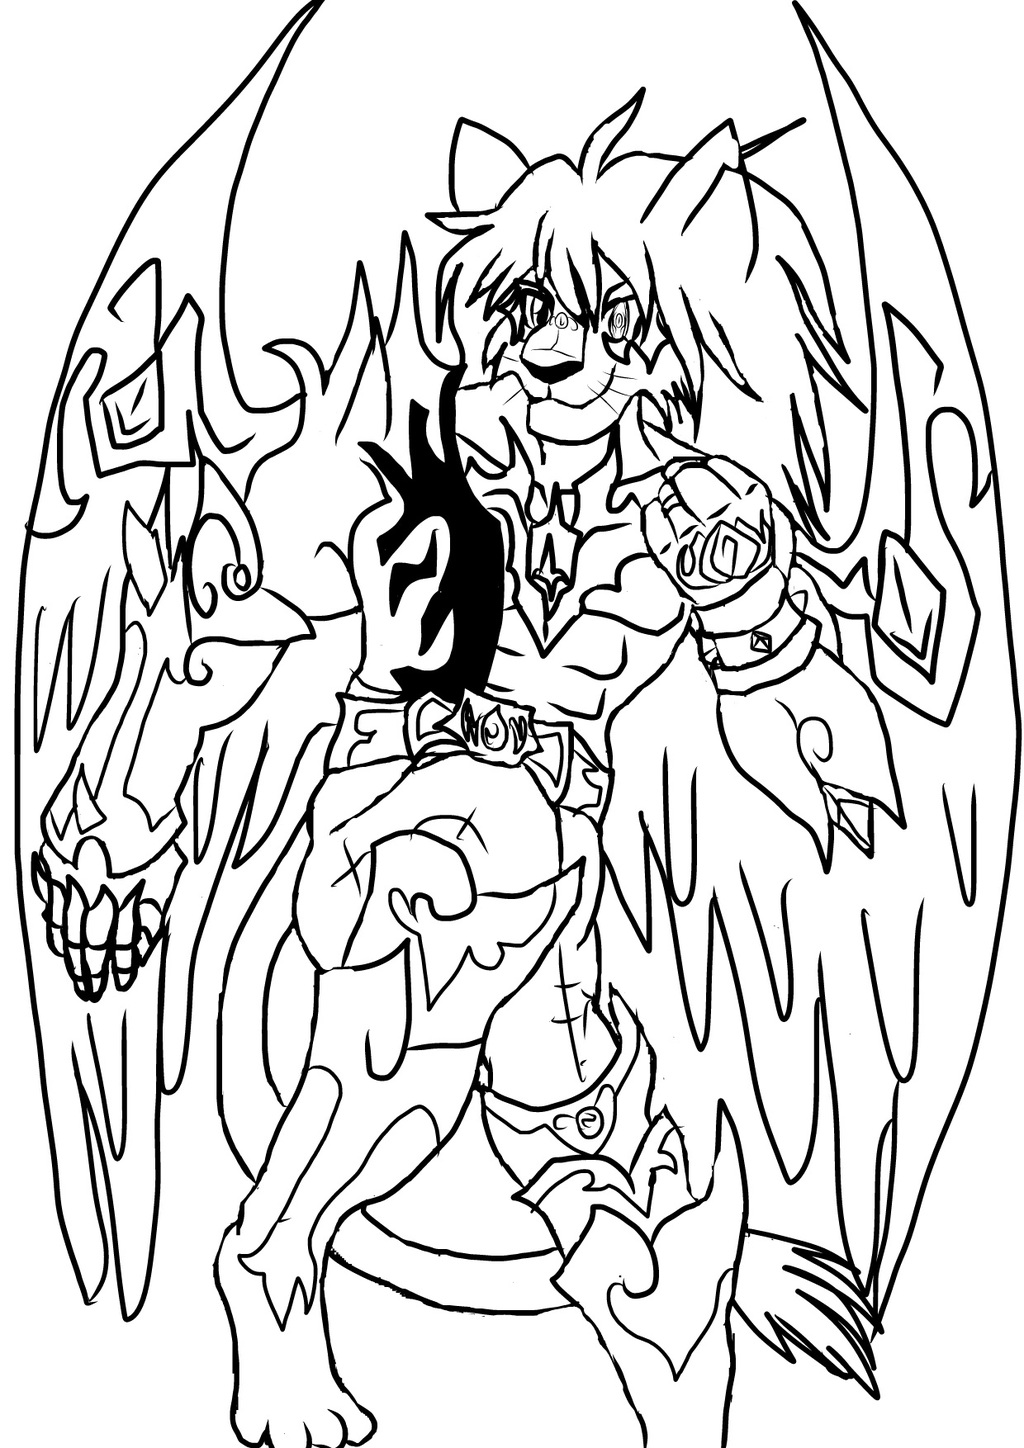 Most recent character: ZAGURA, THE WINGED LION